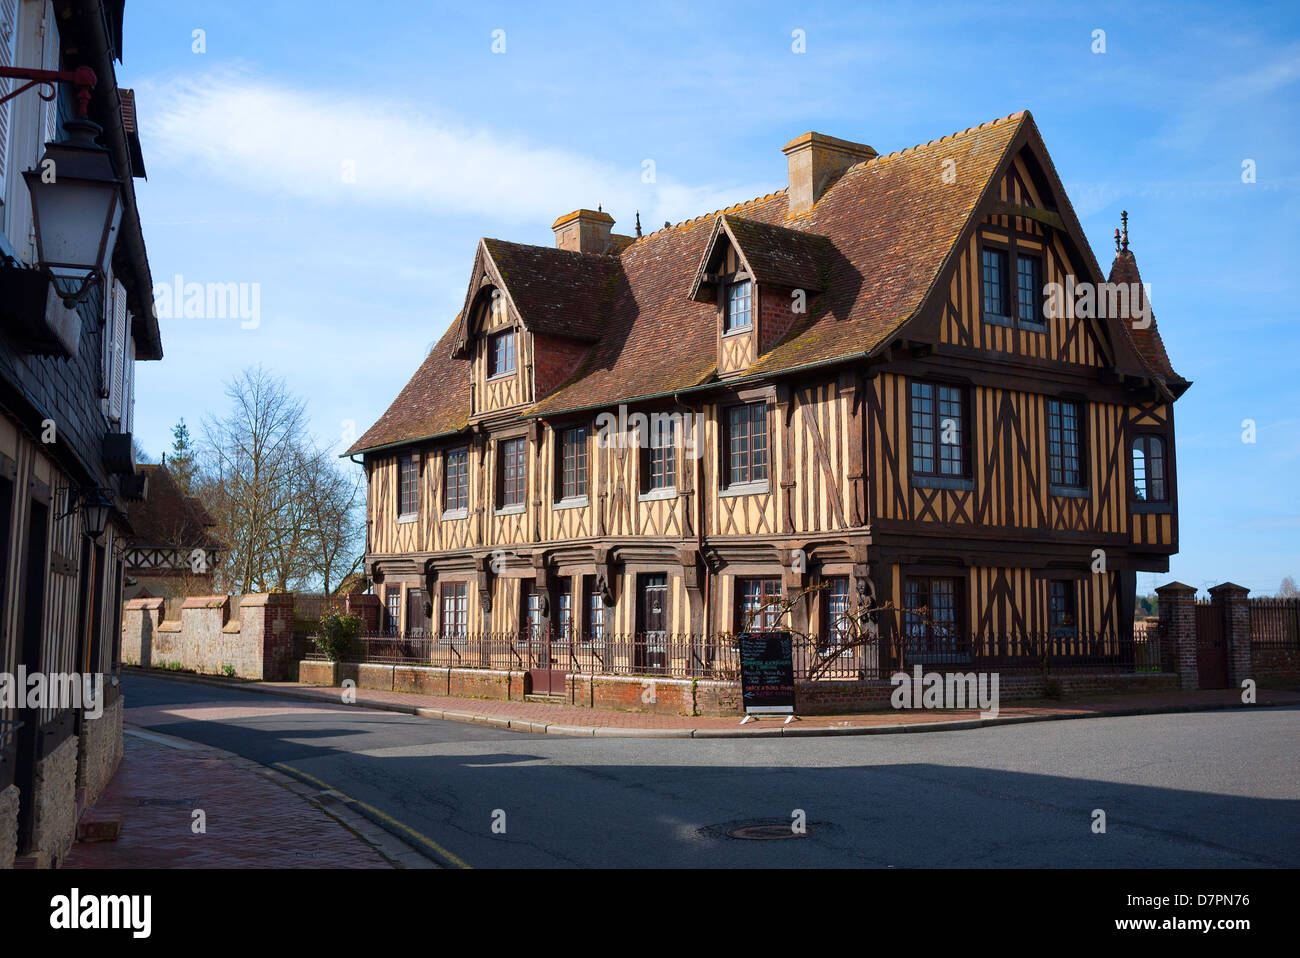 how to tell if a house is timber framed